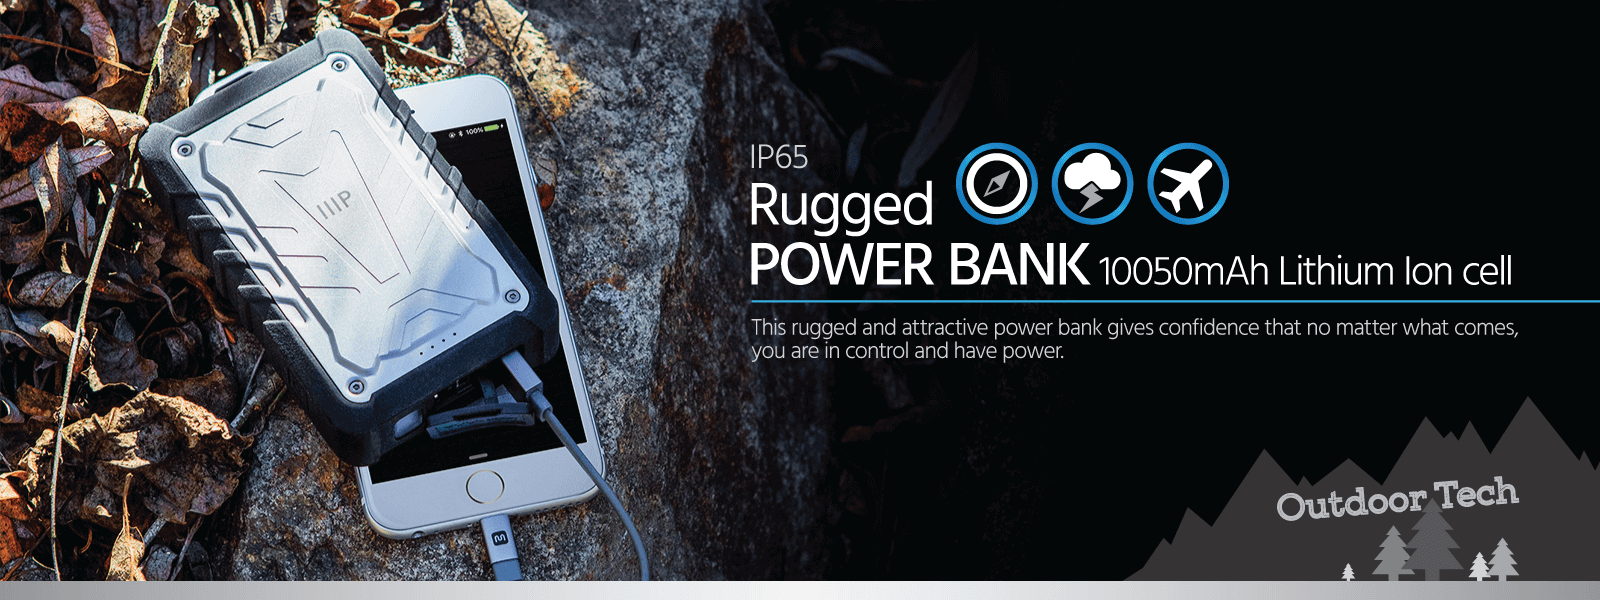 Rugged Power Bank